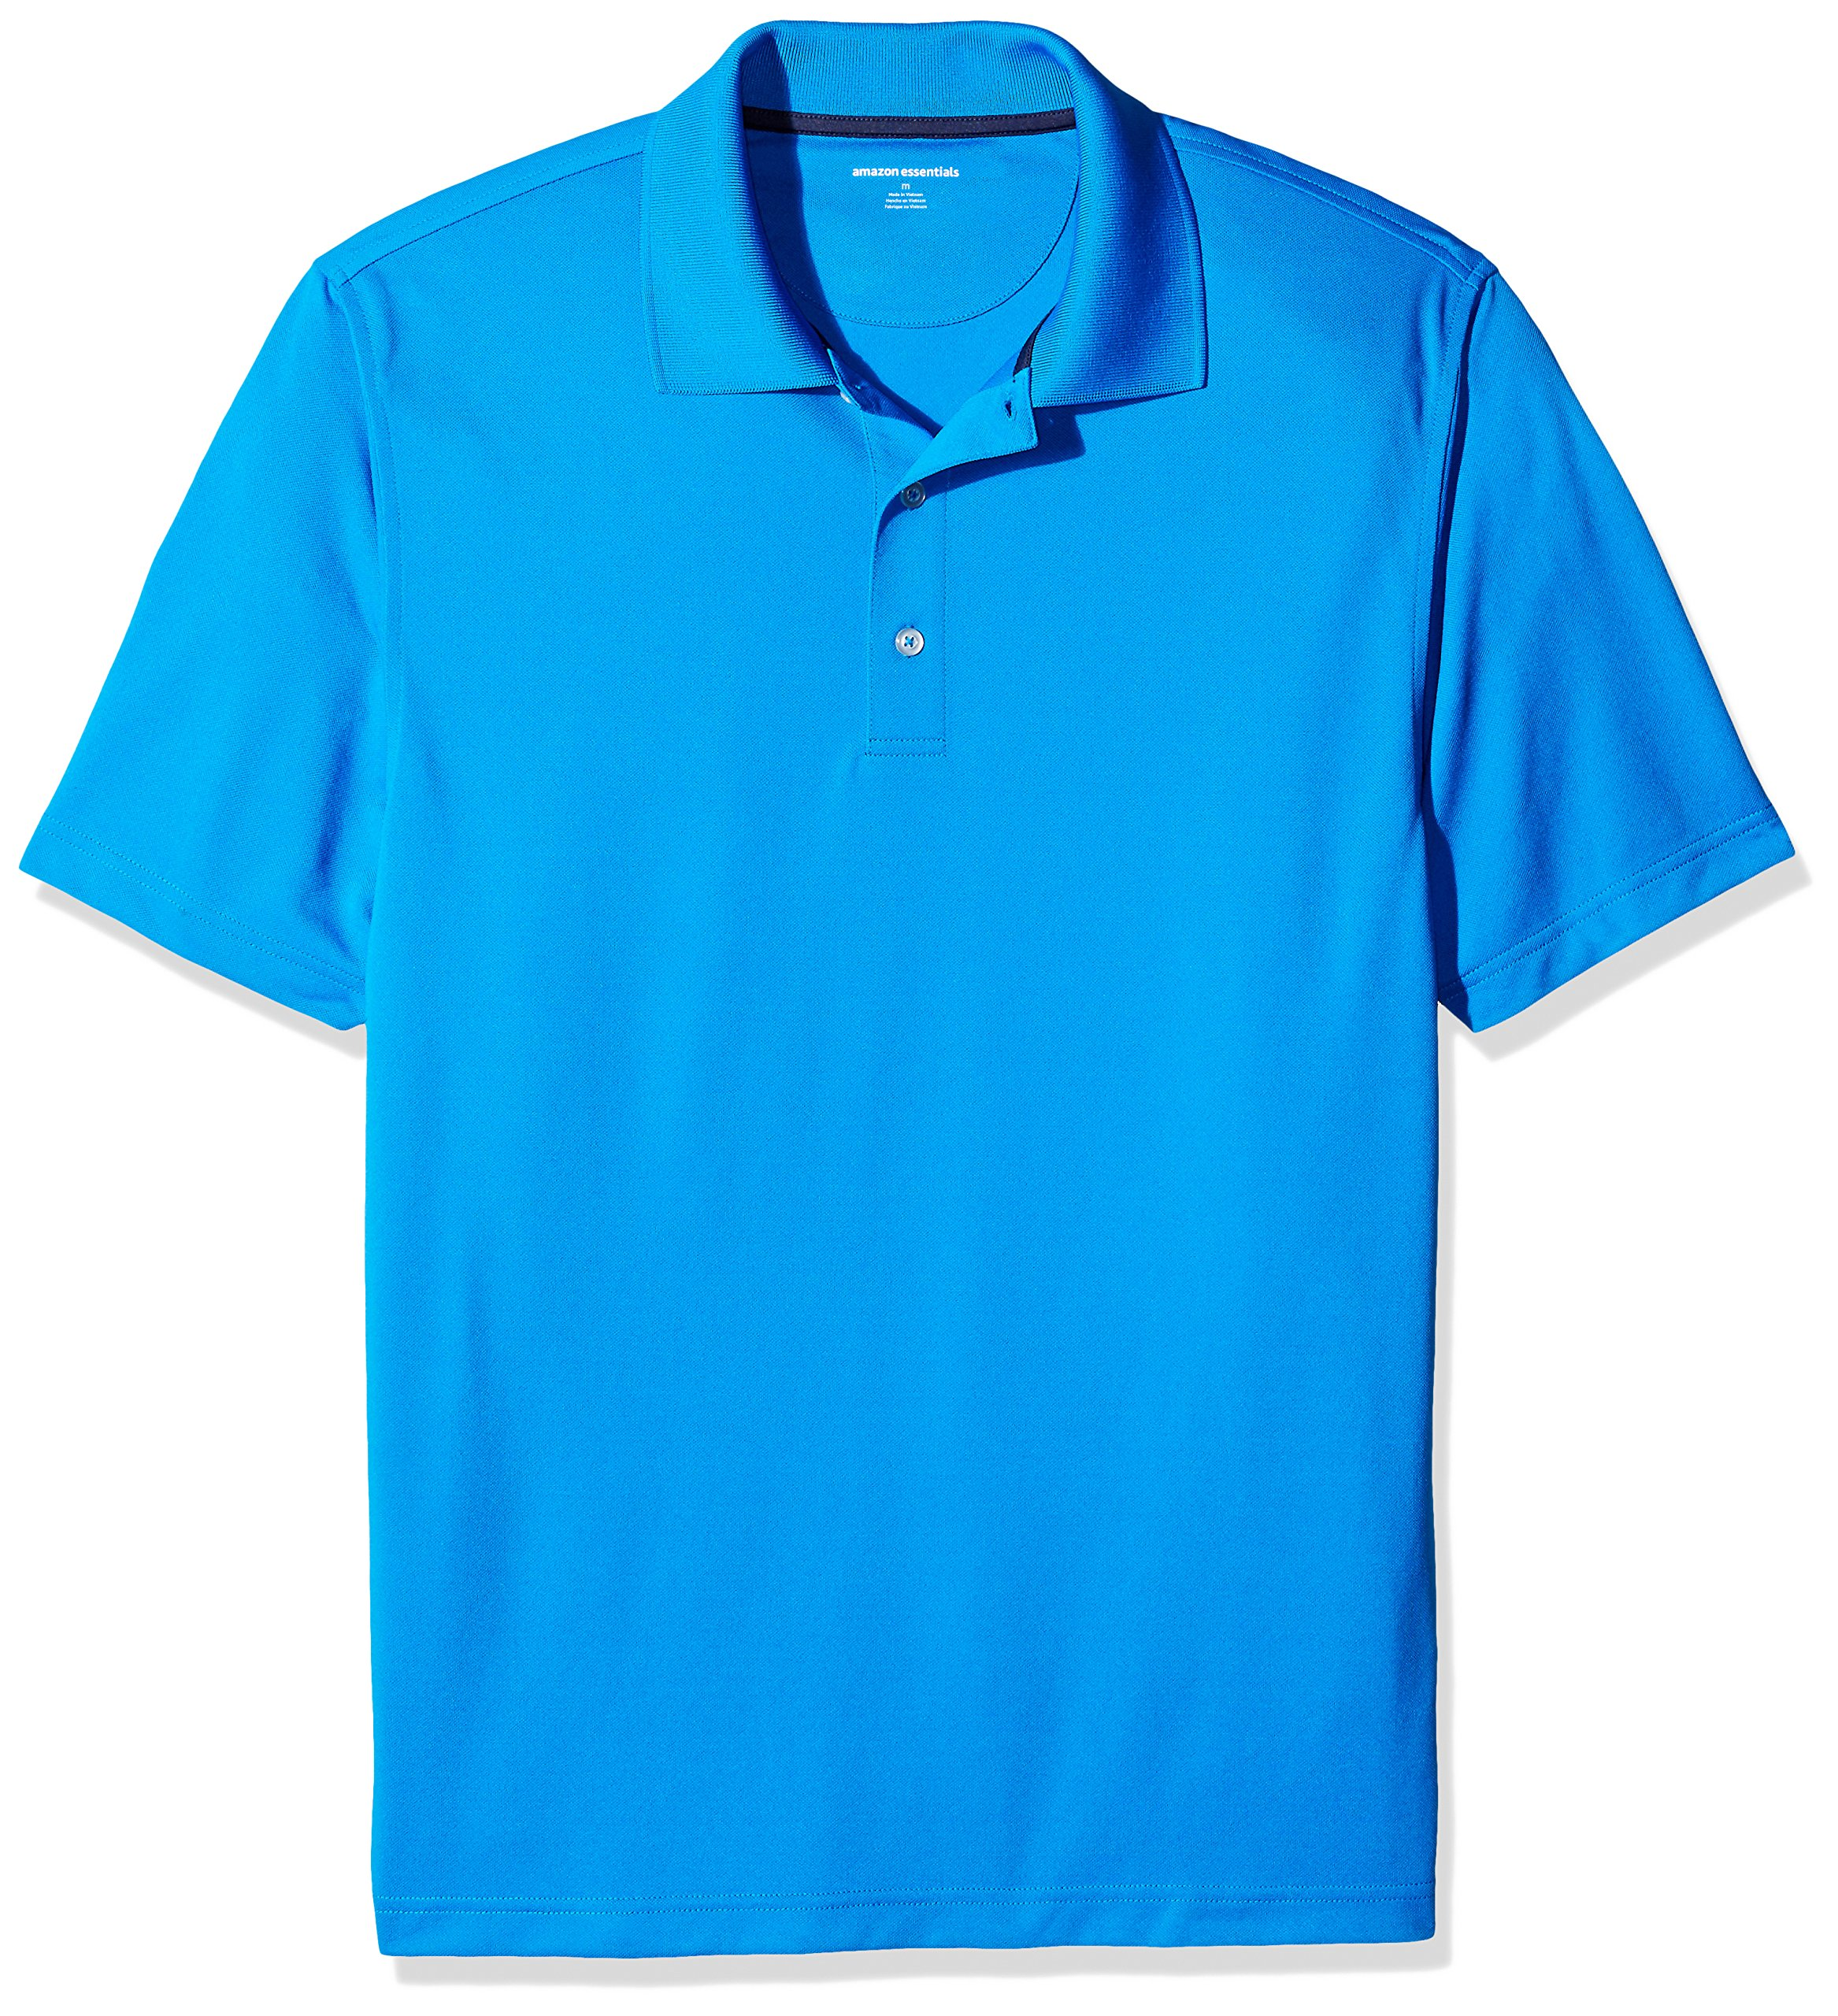 Amazon Essentials Men's Regular-Fit Quick-Dry Golf Polo Shirt, Electric Blue, X-Small by Amazon Essentials